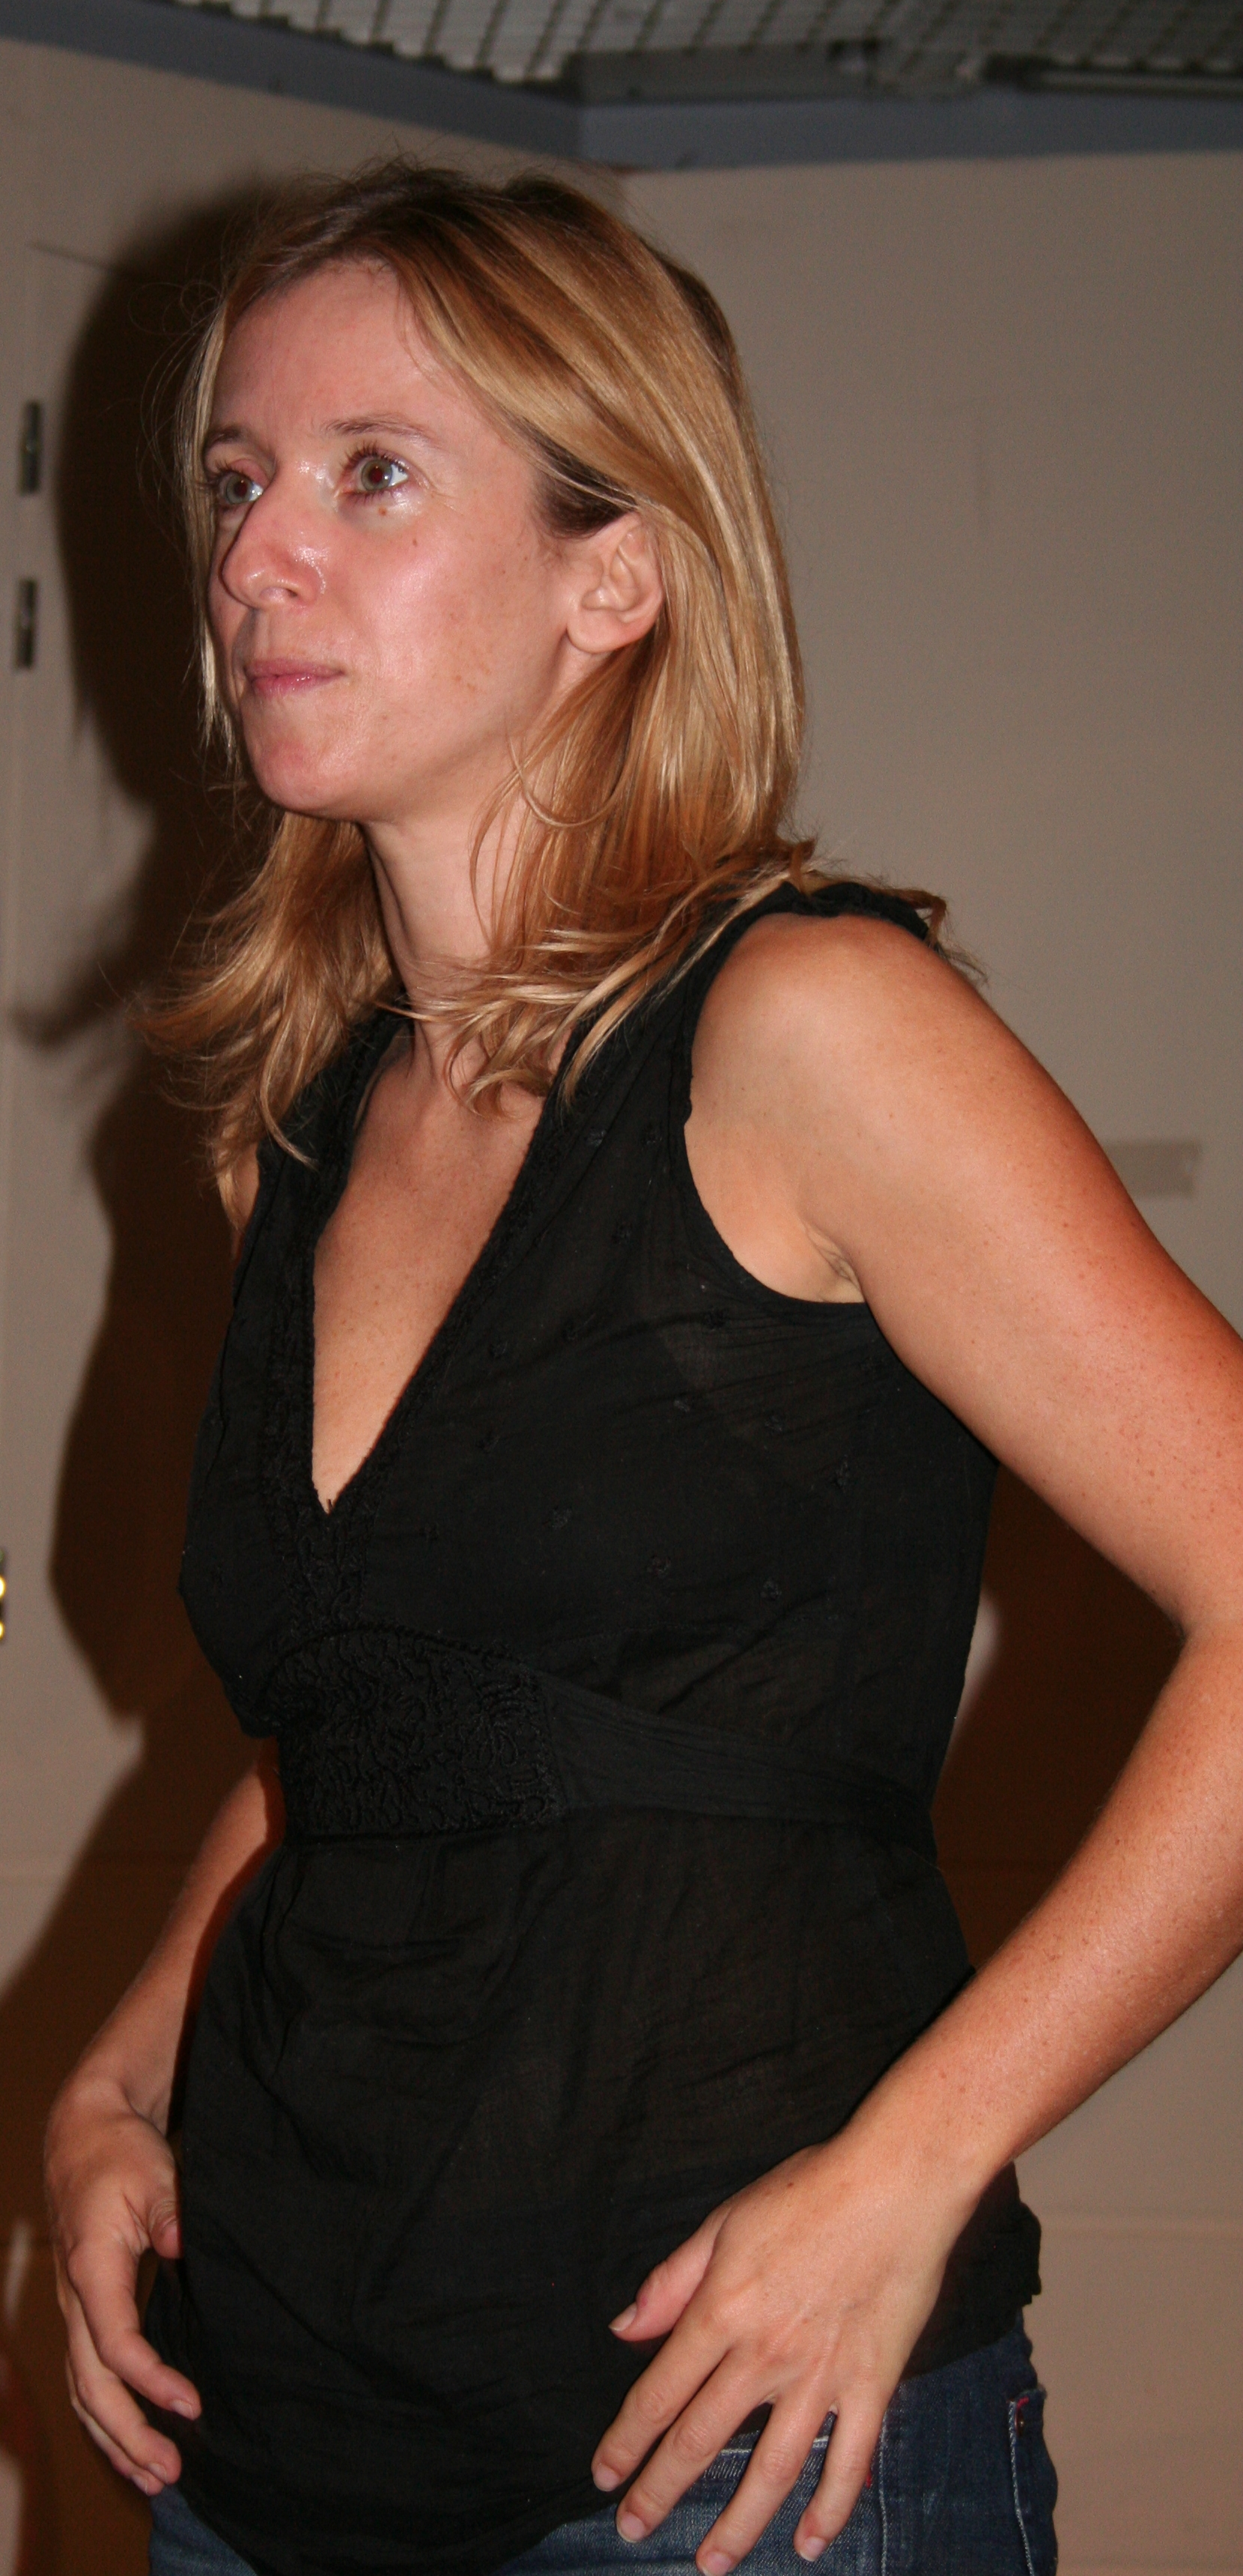 File:Lea Drucker 20060926 Fnac 02.jpg - Wikimedia Commons